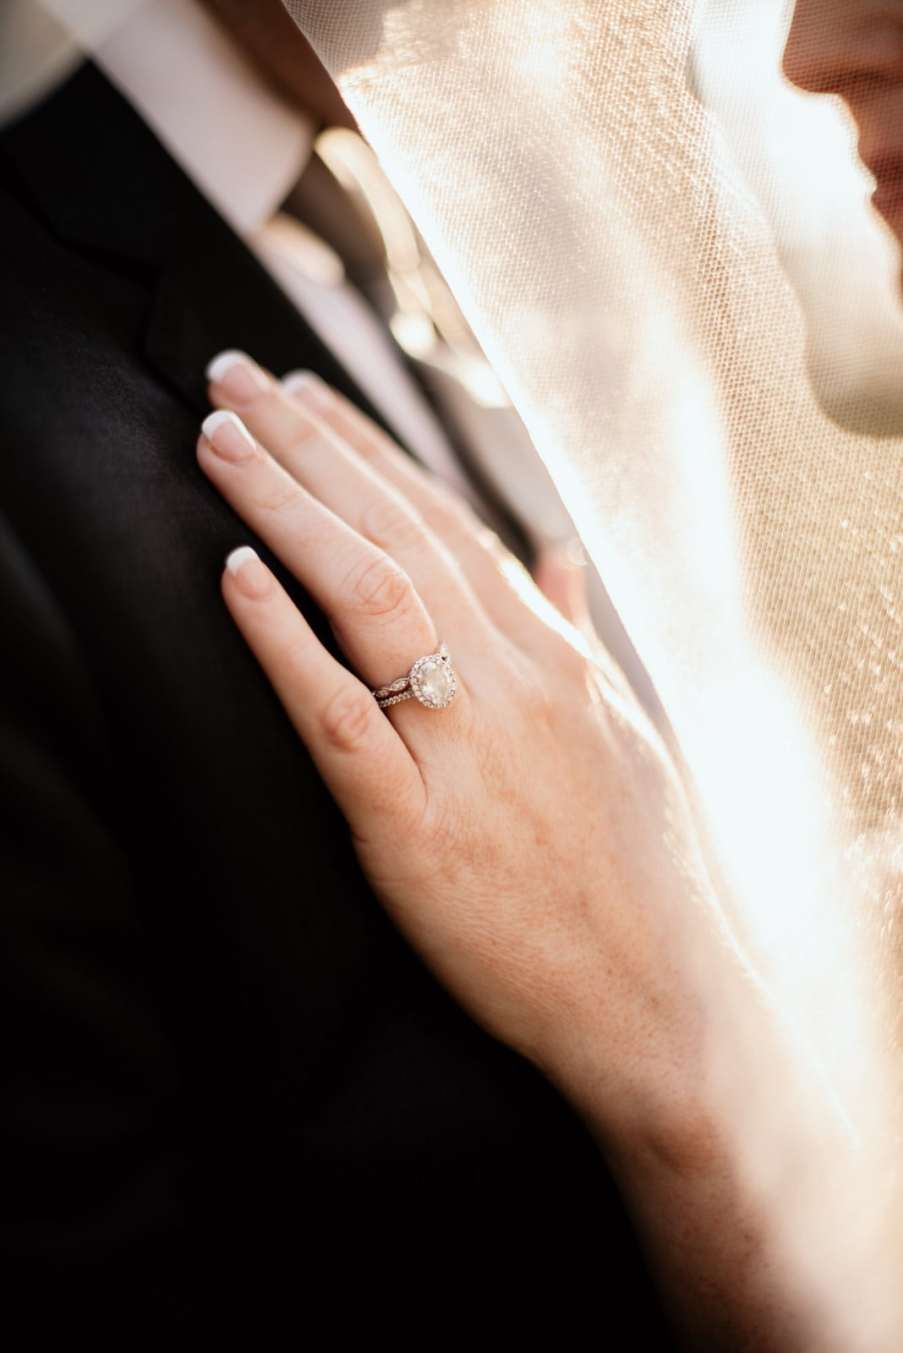 Detailed ring shot with veil